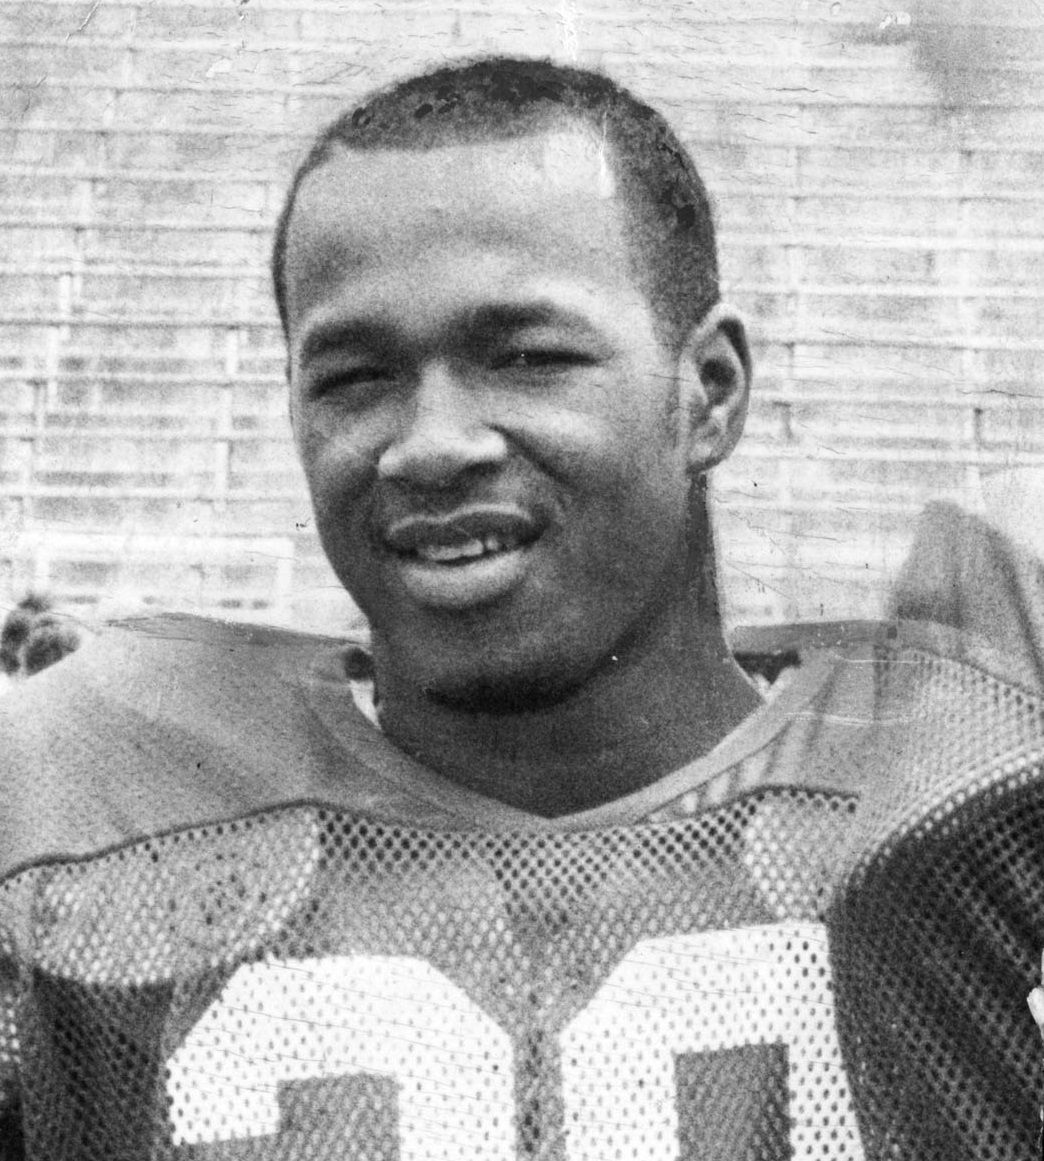 2 Robert Rozier SPORT 10 Sports Stars Who Committed Terrible Crimes